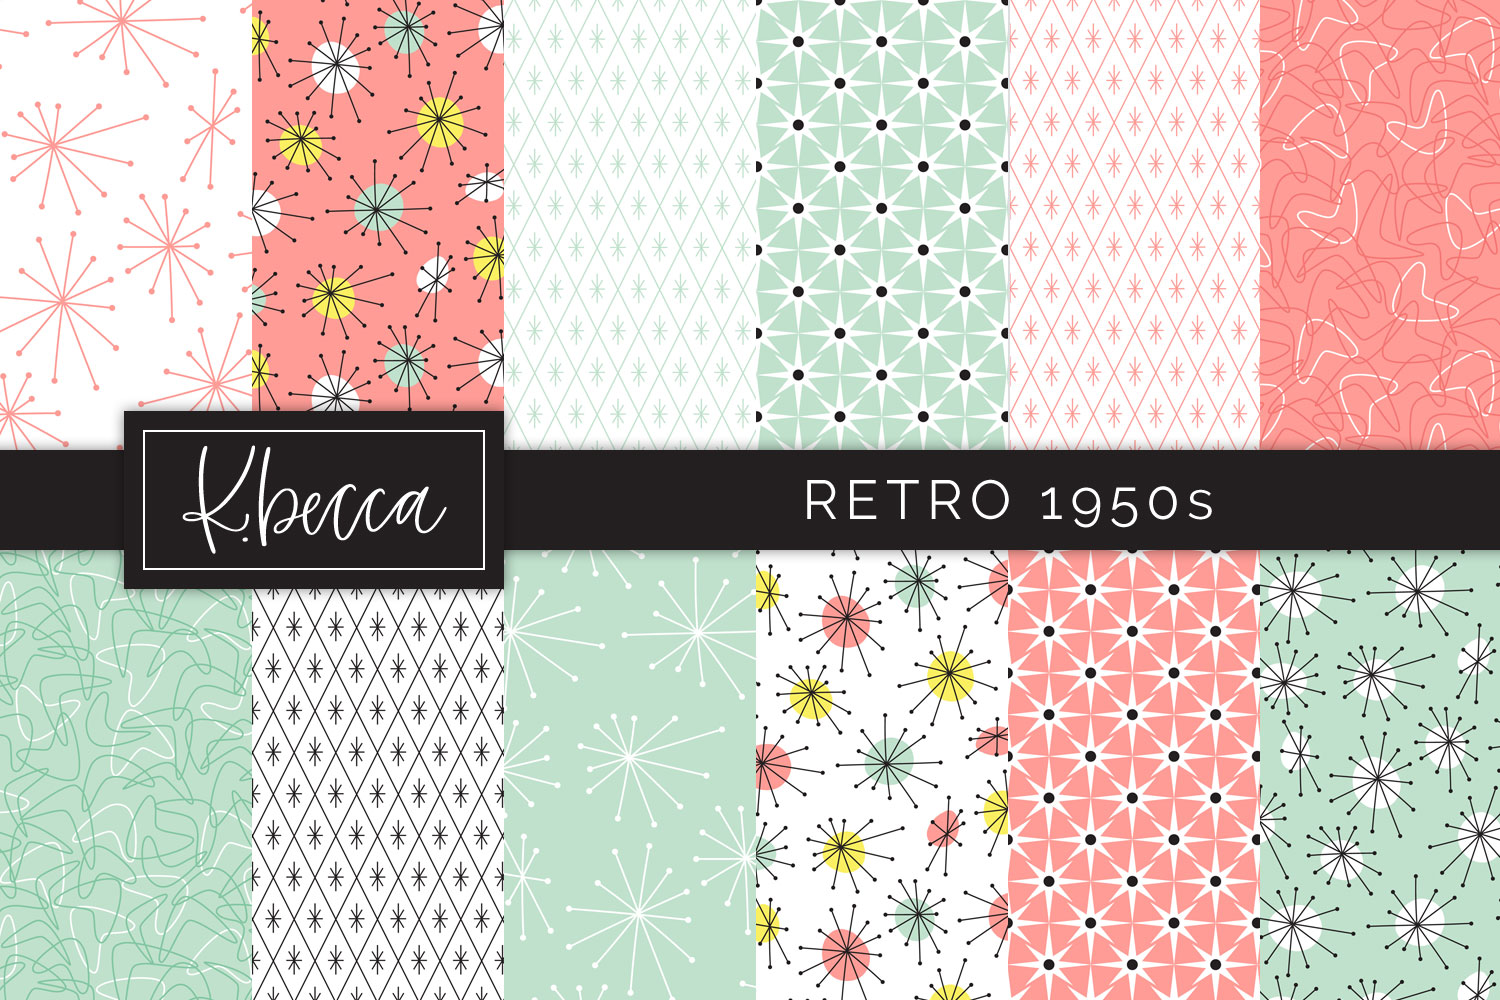 Retro 1950s Background Patterns Seamless example image 1